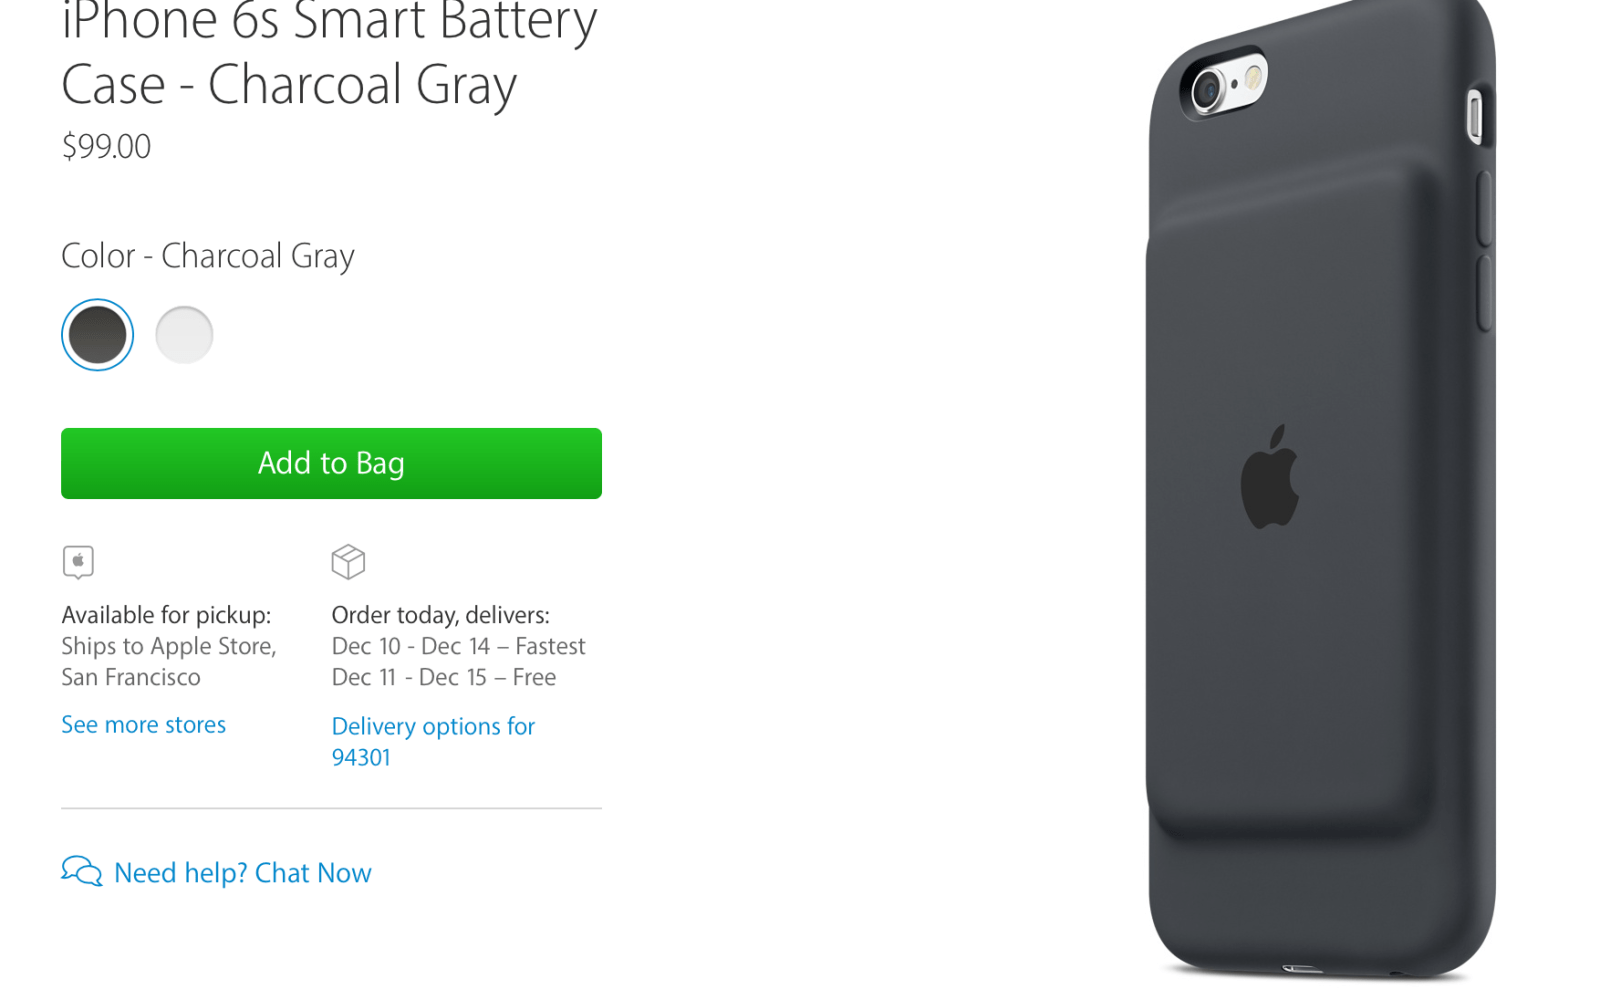 buy online 0fd8f 49293 Apple releases $99 iPhone 6s Smart Battery Case, Apple's first ...